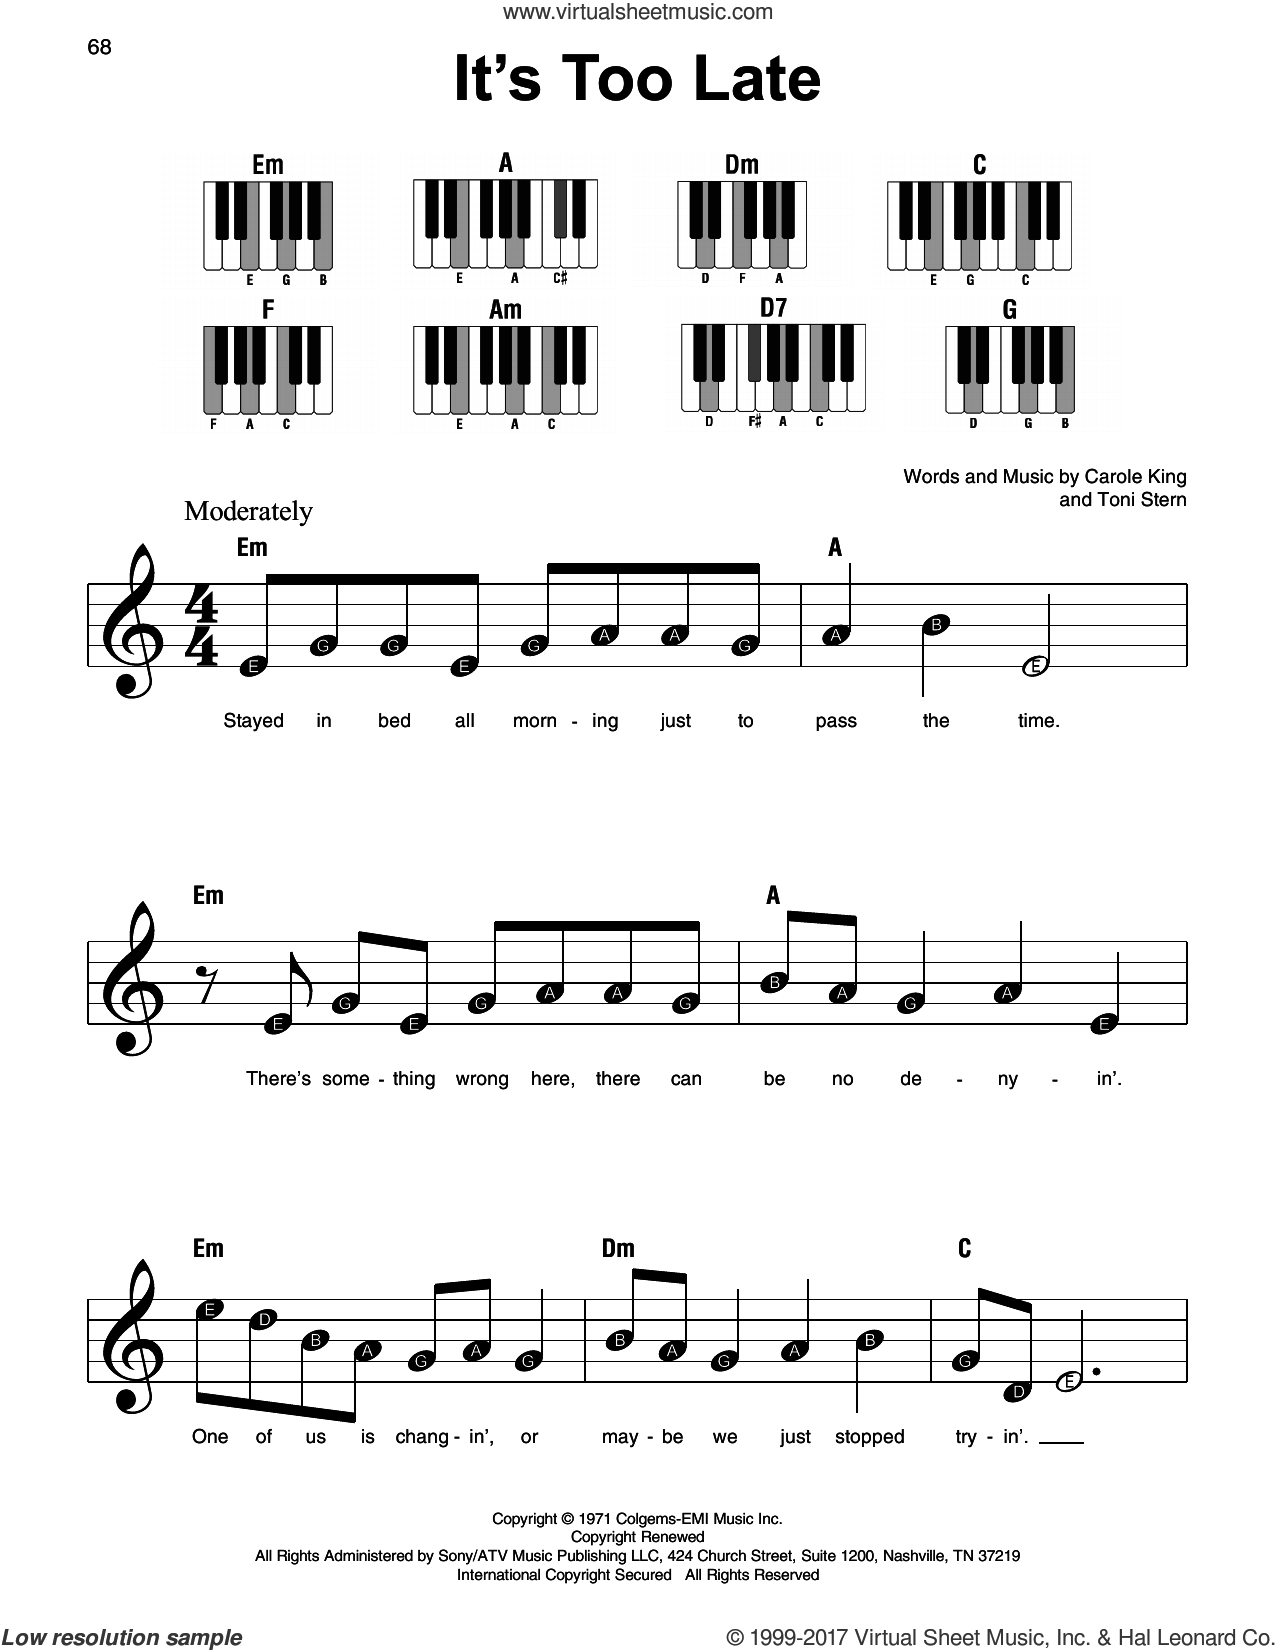 It's Too Late sheet music for piano solo by Carole King and Toni Stern, beginner skill level